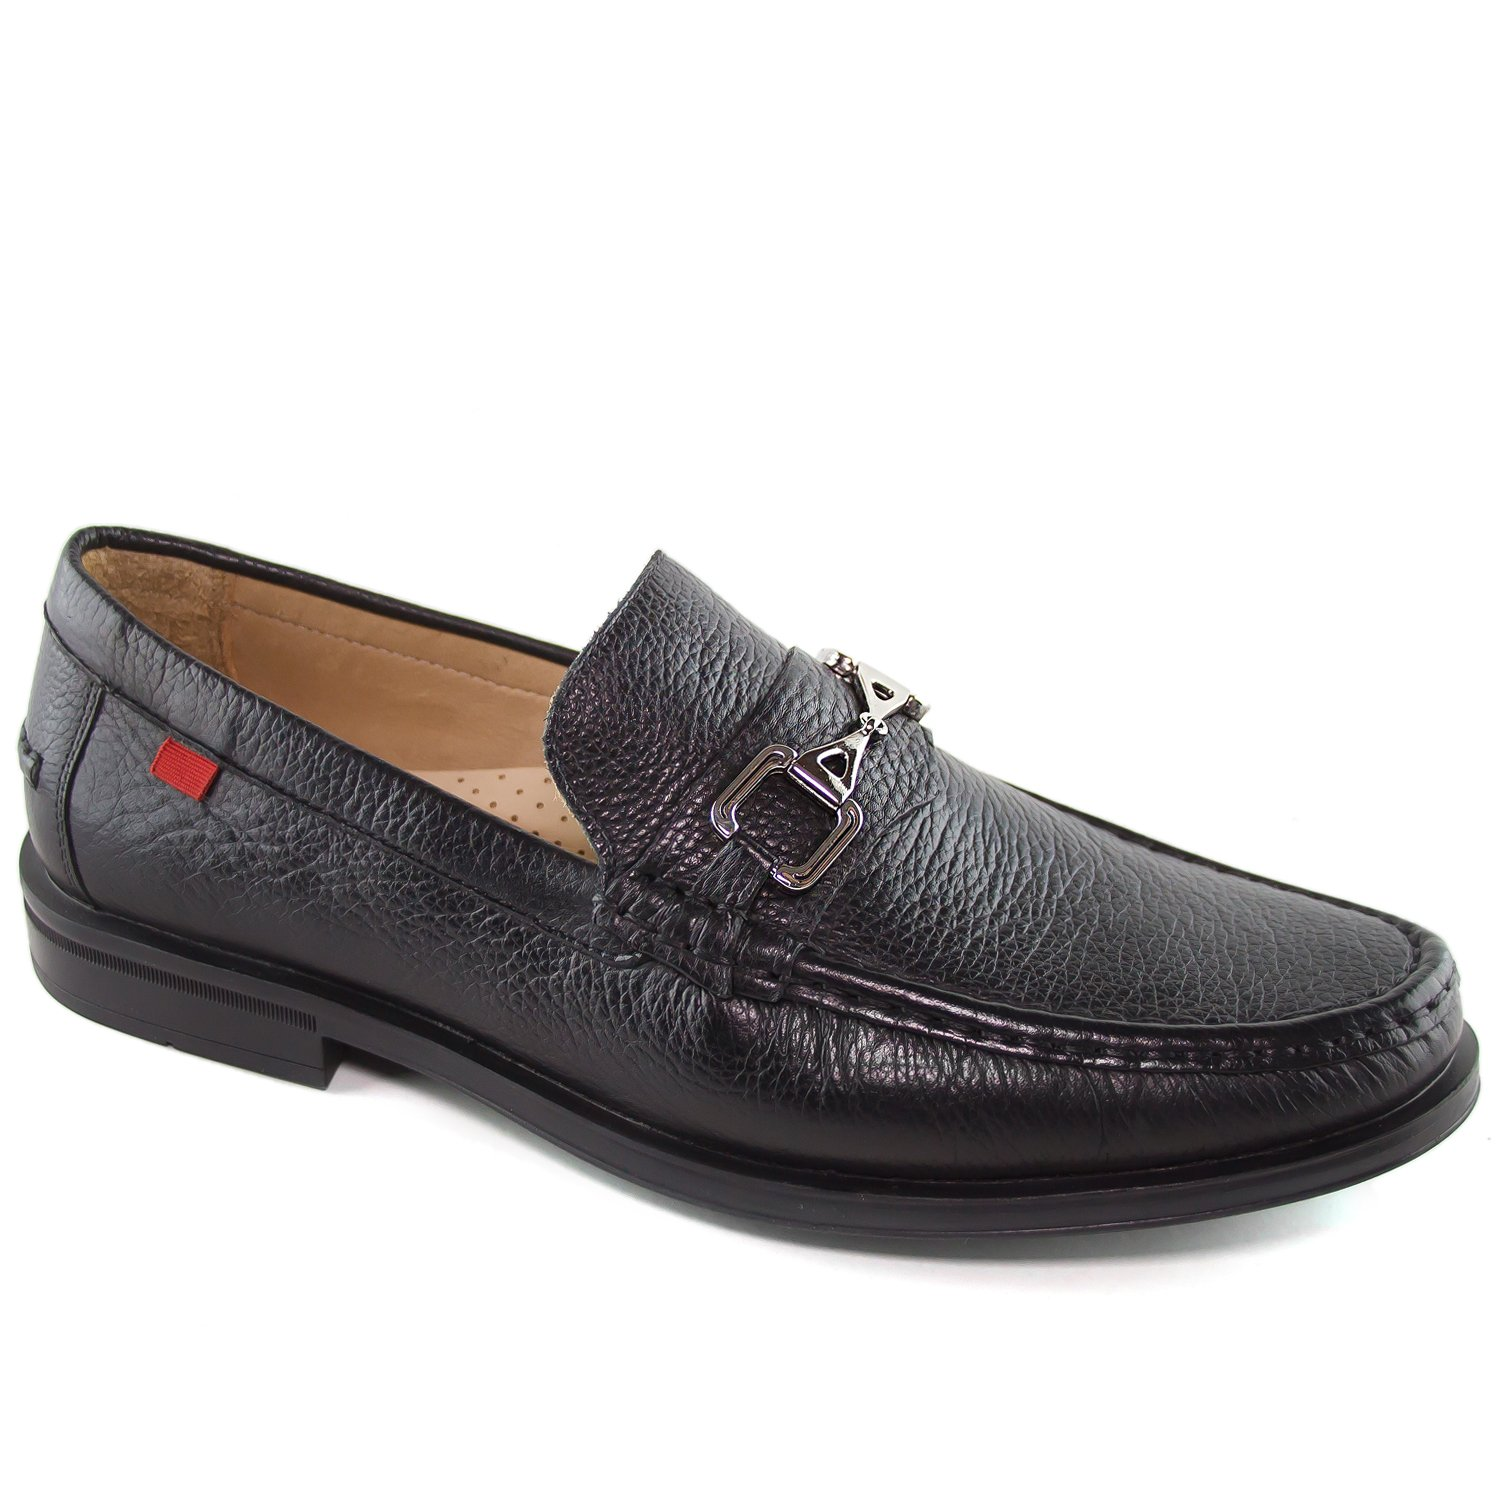 Mens Genuine Leather Made In Brazil Astoria Bit Black Buckle Loafer Marc Joseph NY Fashion Shoes 13